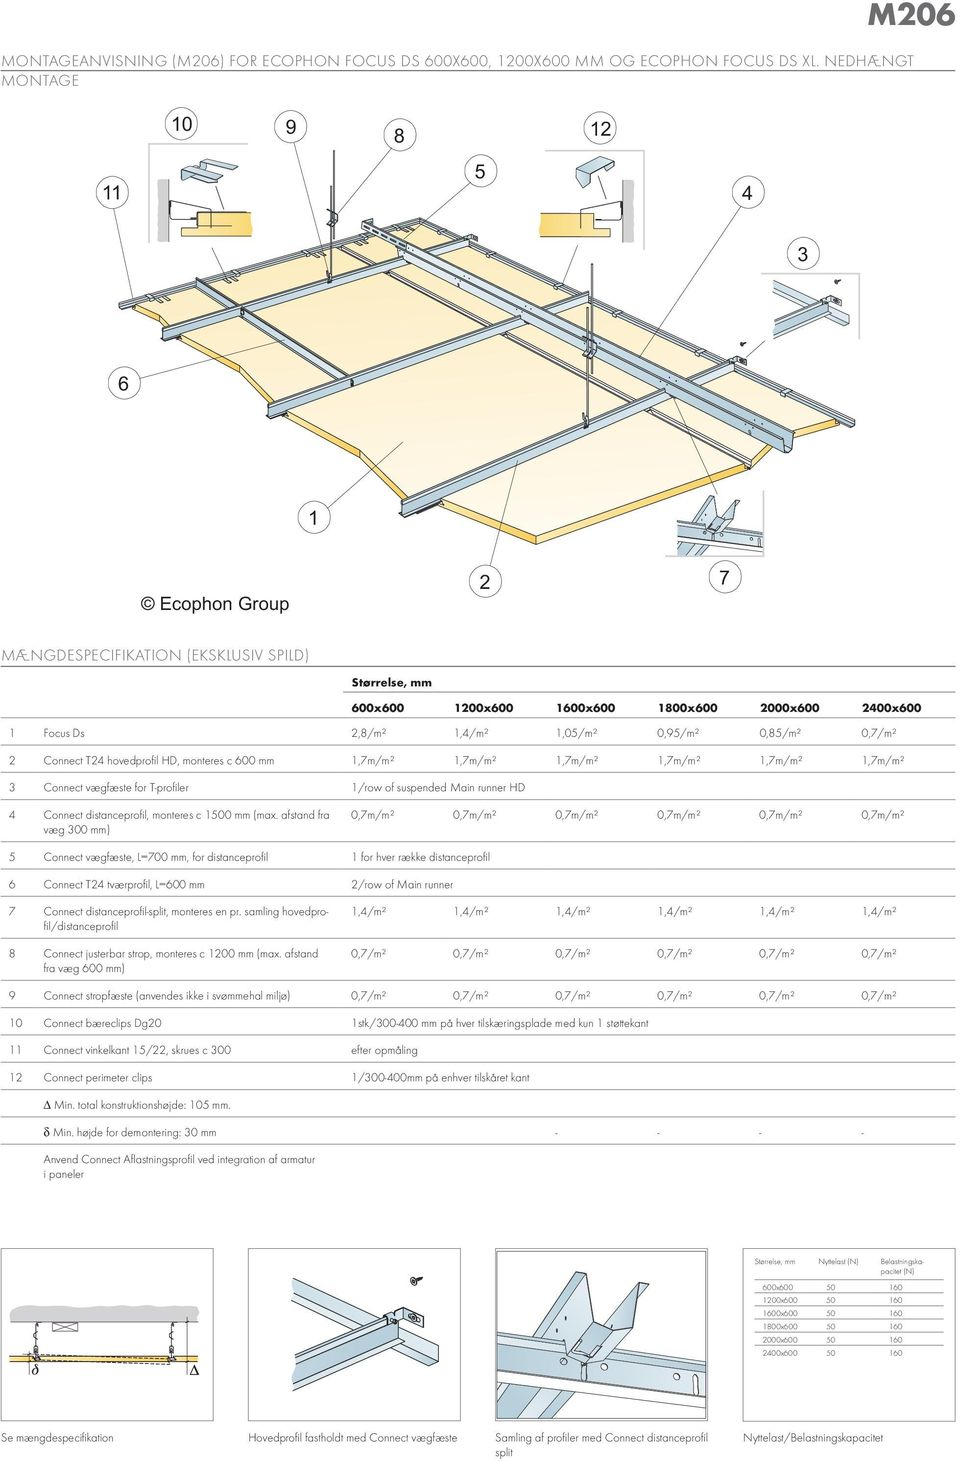 monteres c 600 mm 1,7m/m² 1,7m/m² 1,7m/m² 1,7m/m² 1,7m/m² 1,7m/m² 3 Connect vægfæste for T-profiler 1/row of suspended Main runner HD 4 Connect distanceprofil, monteres c 1500 mm (max.